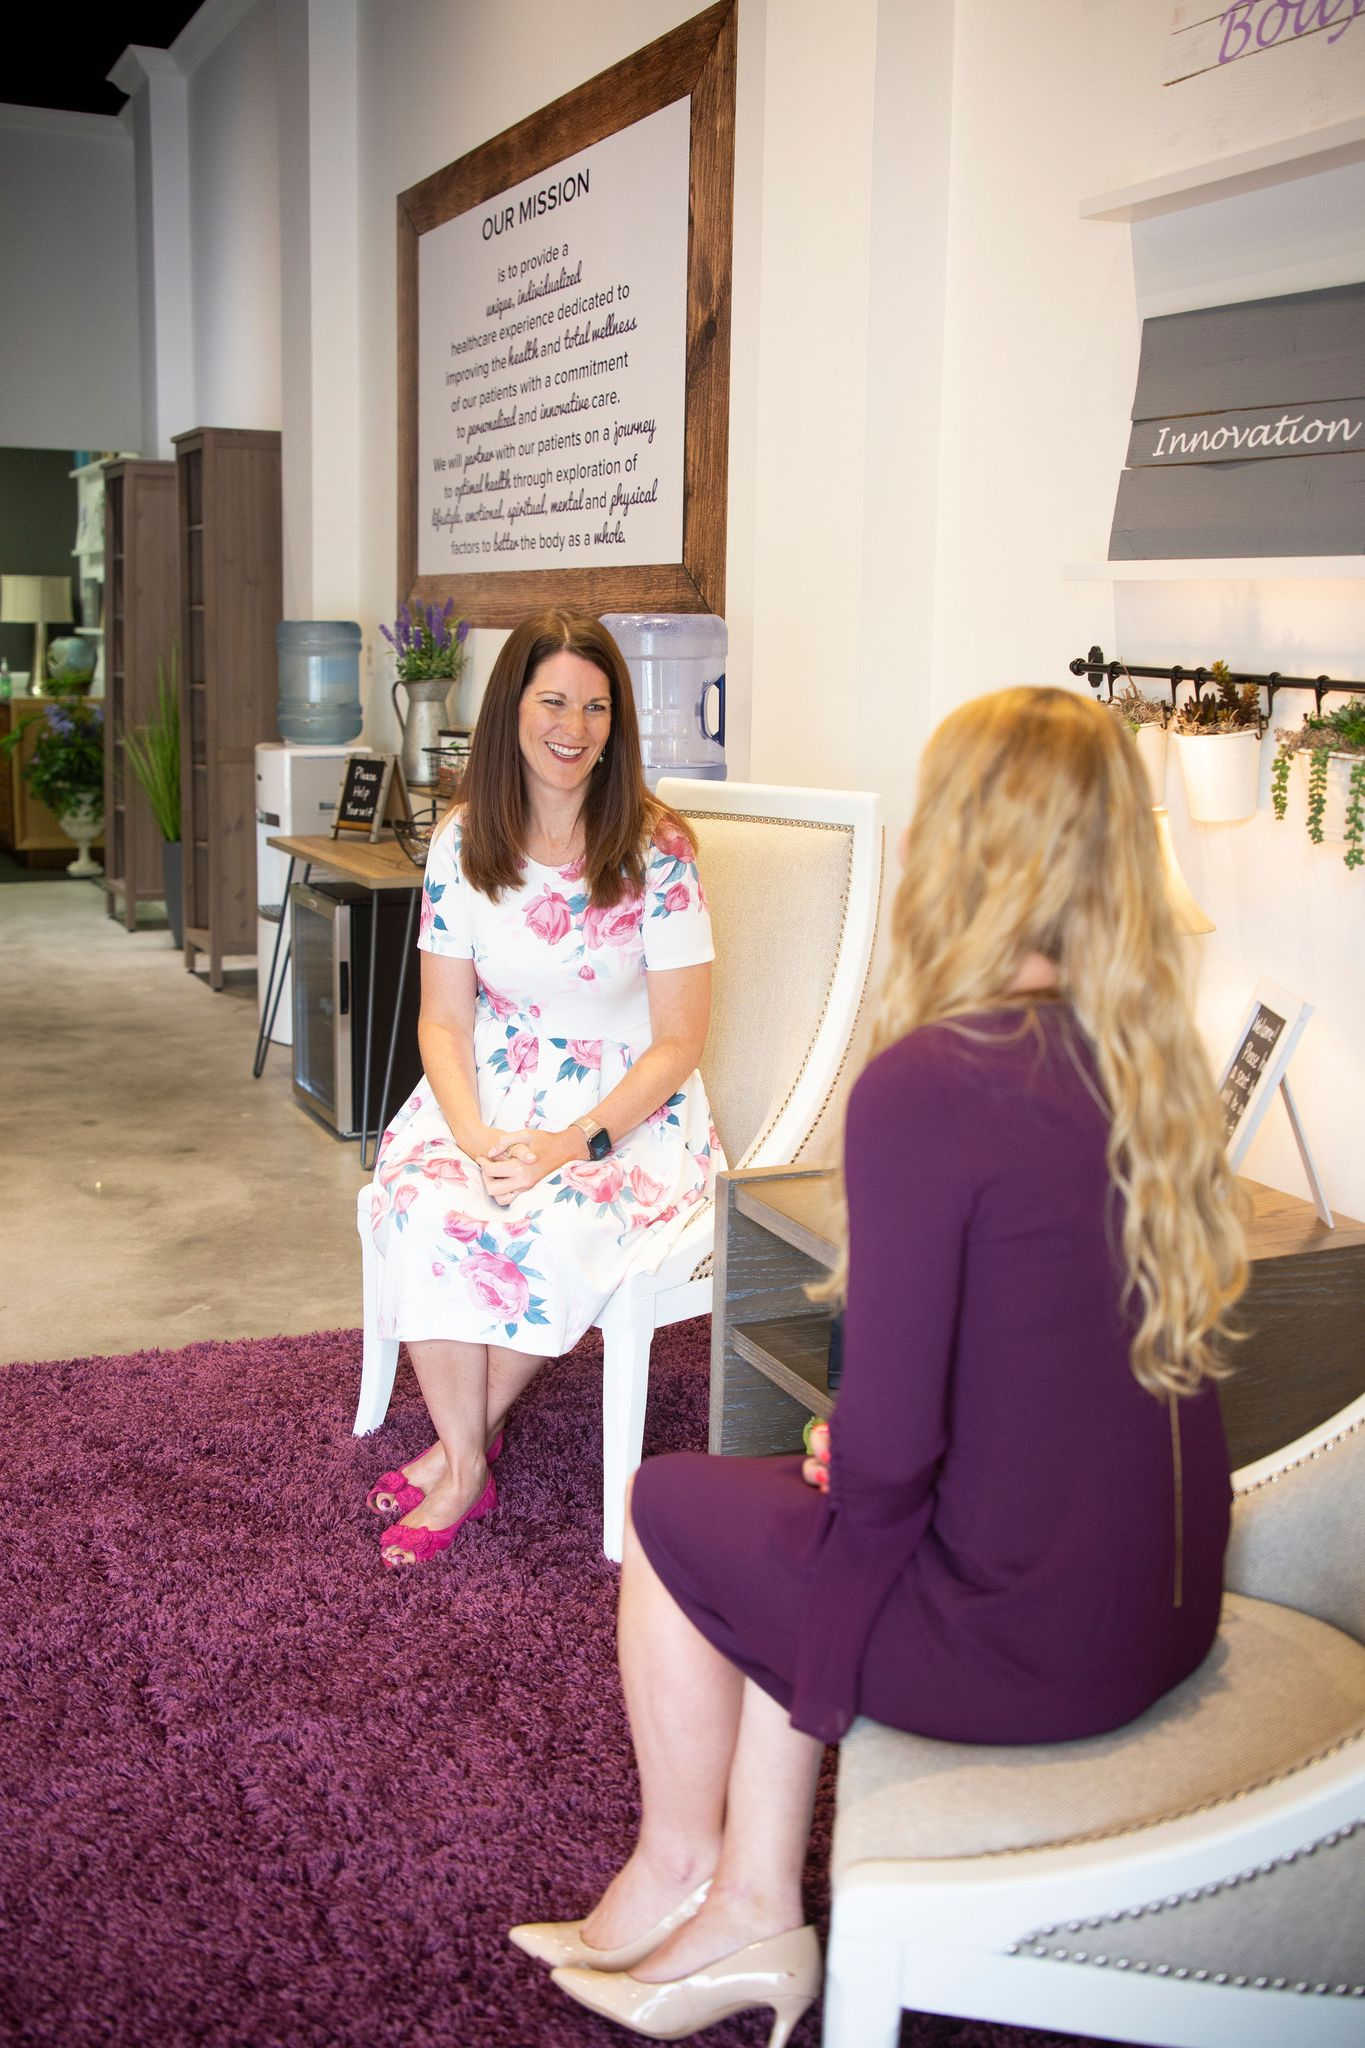 Tiffany Allen, nurse practitioner at Triad Lifestyle Medicine speaks with her associate in the lobby.